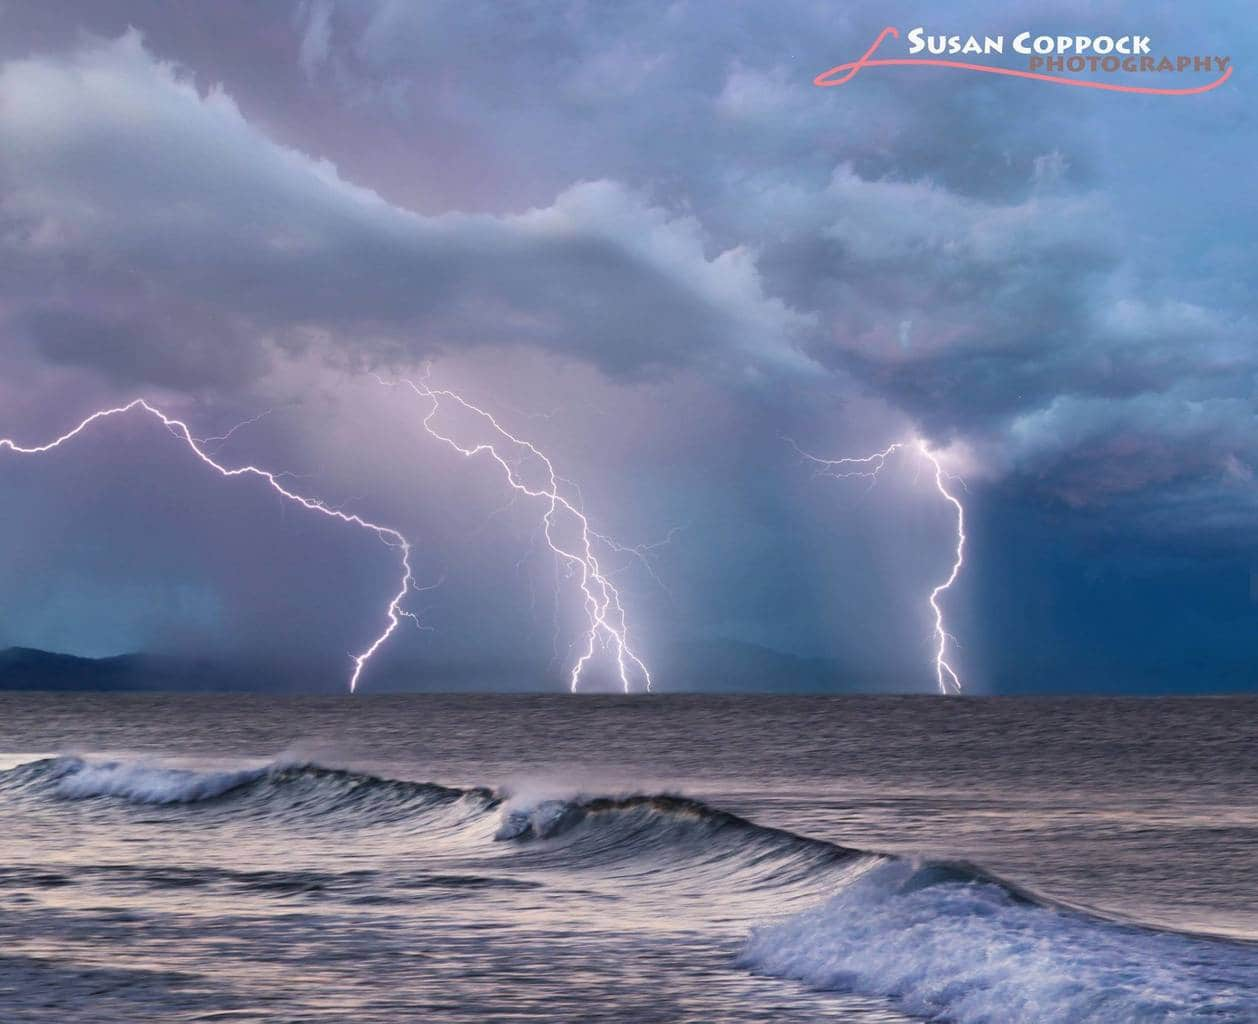 This is a composite. I like how the three lightning strikes match the three tops of waves and how the sunrise colors fit together so well.